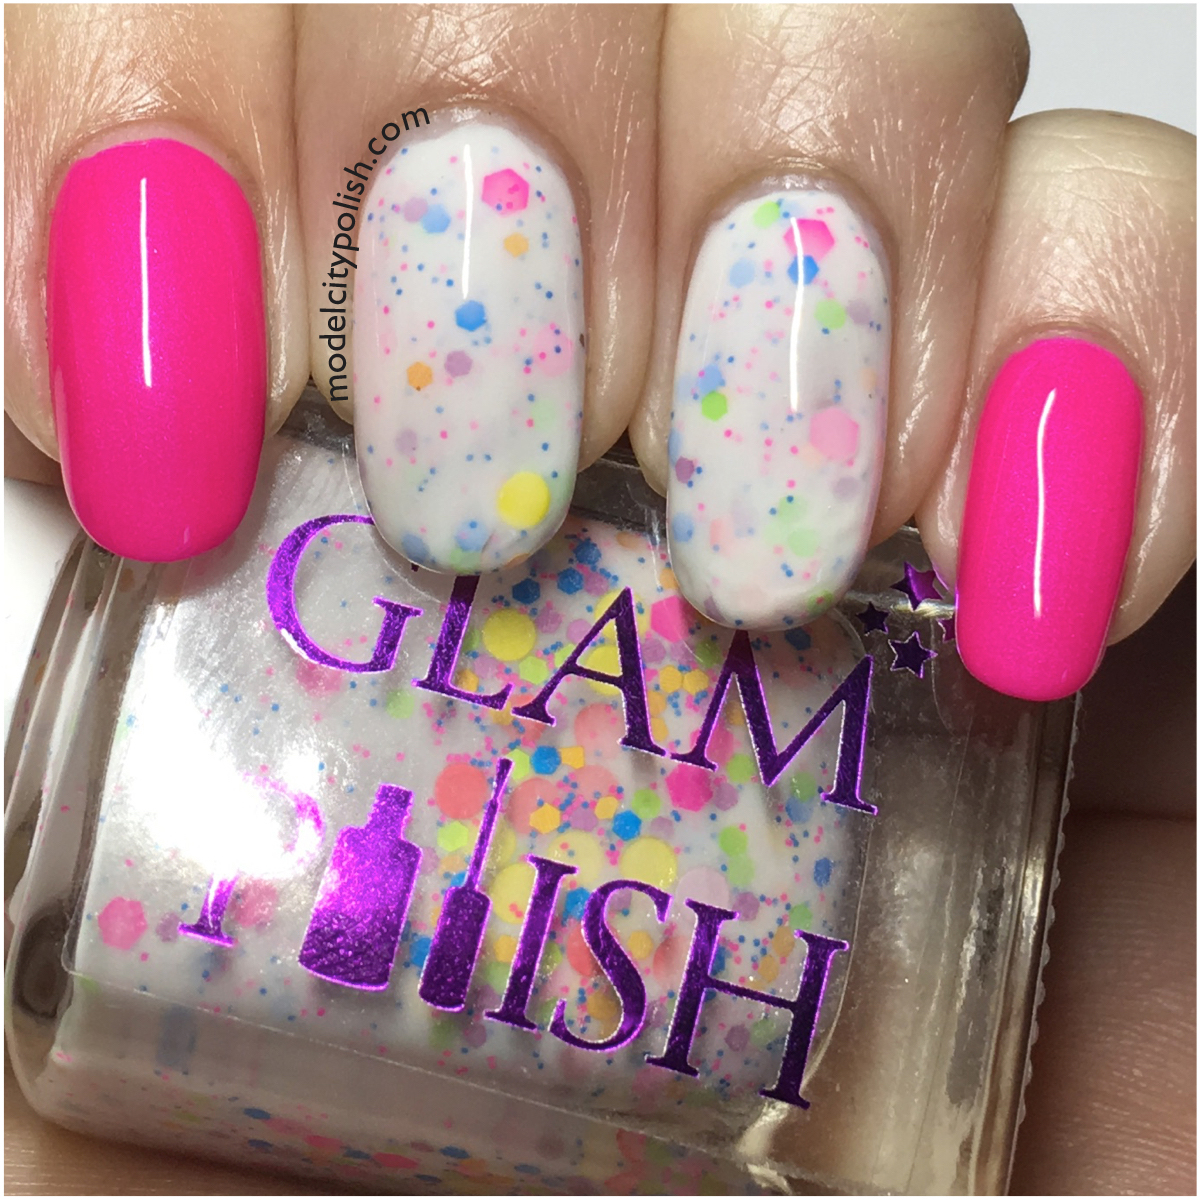 China Glaze and Glam 5